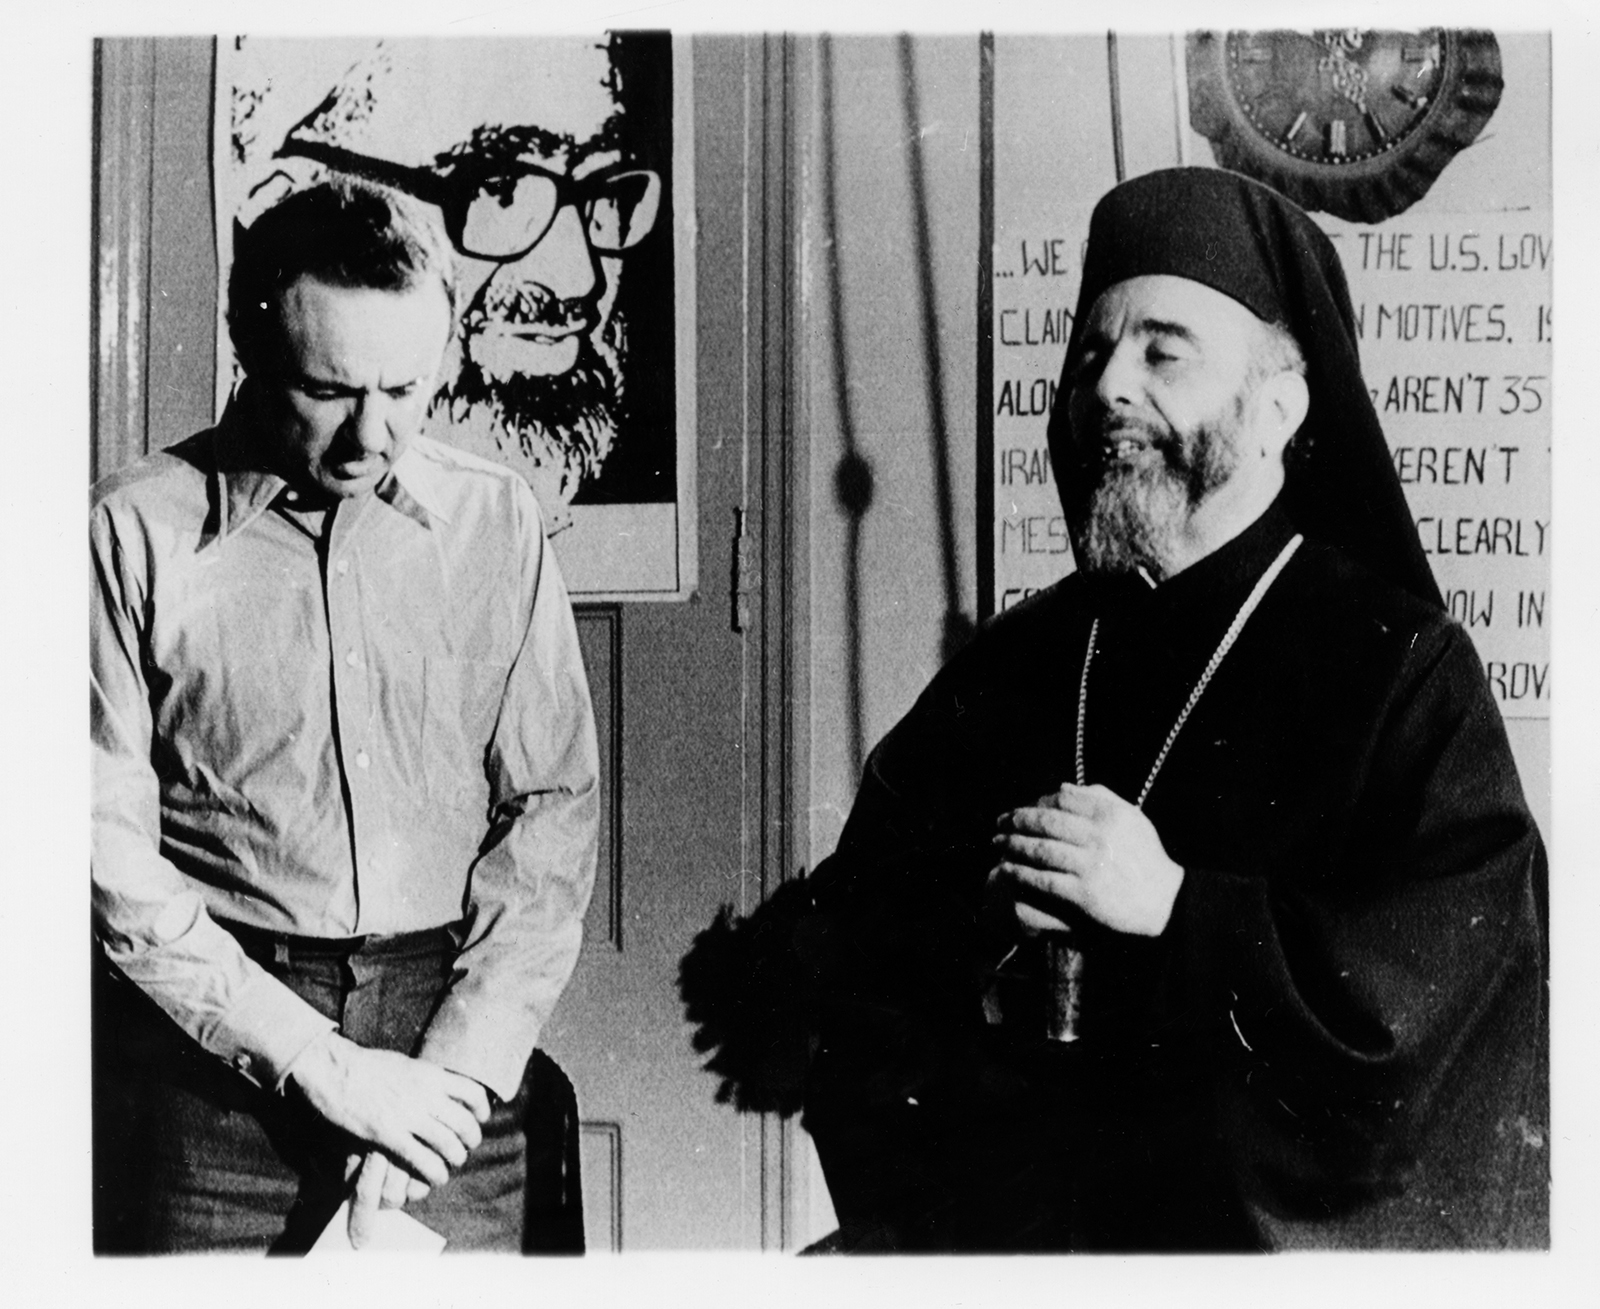 Archbishop Hilarion Capucci, of the Greek Melkite Catholic Church, prays with an unidentified hostage during an Easter visit in the U.S. Embassy in Tehran, Iran, on April 6, 1980. RNS archive photo. Photo courtesy of the Presbyterian Historical Society.